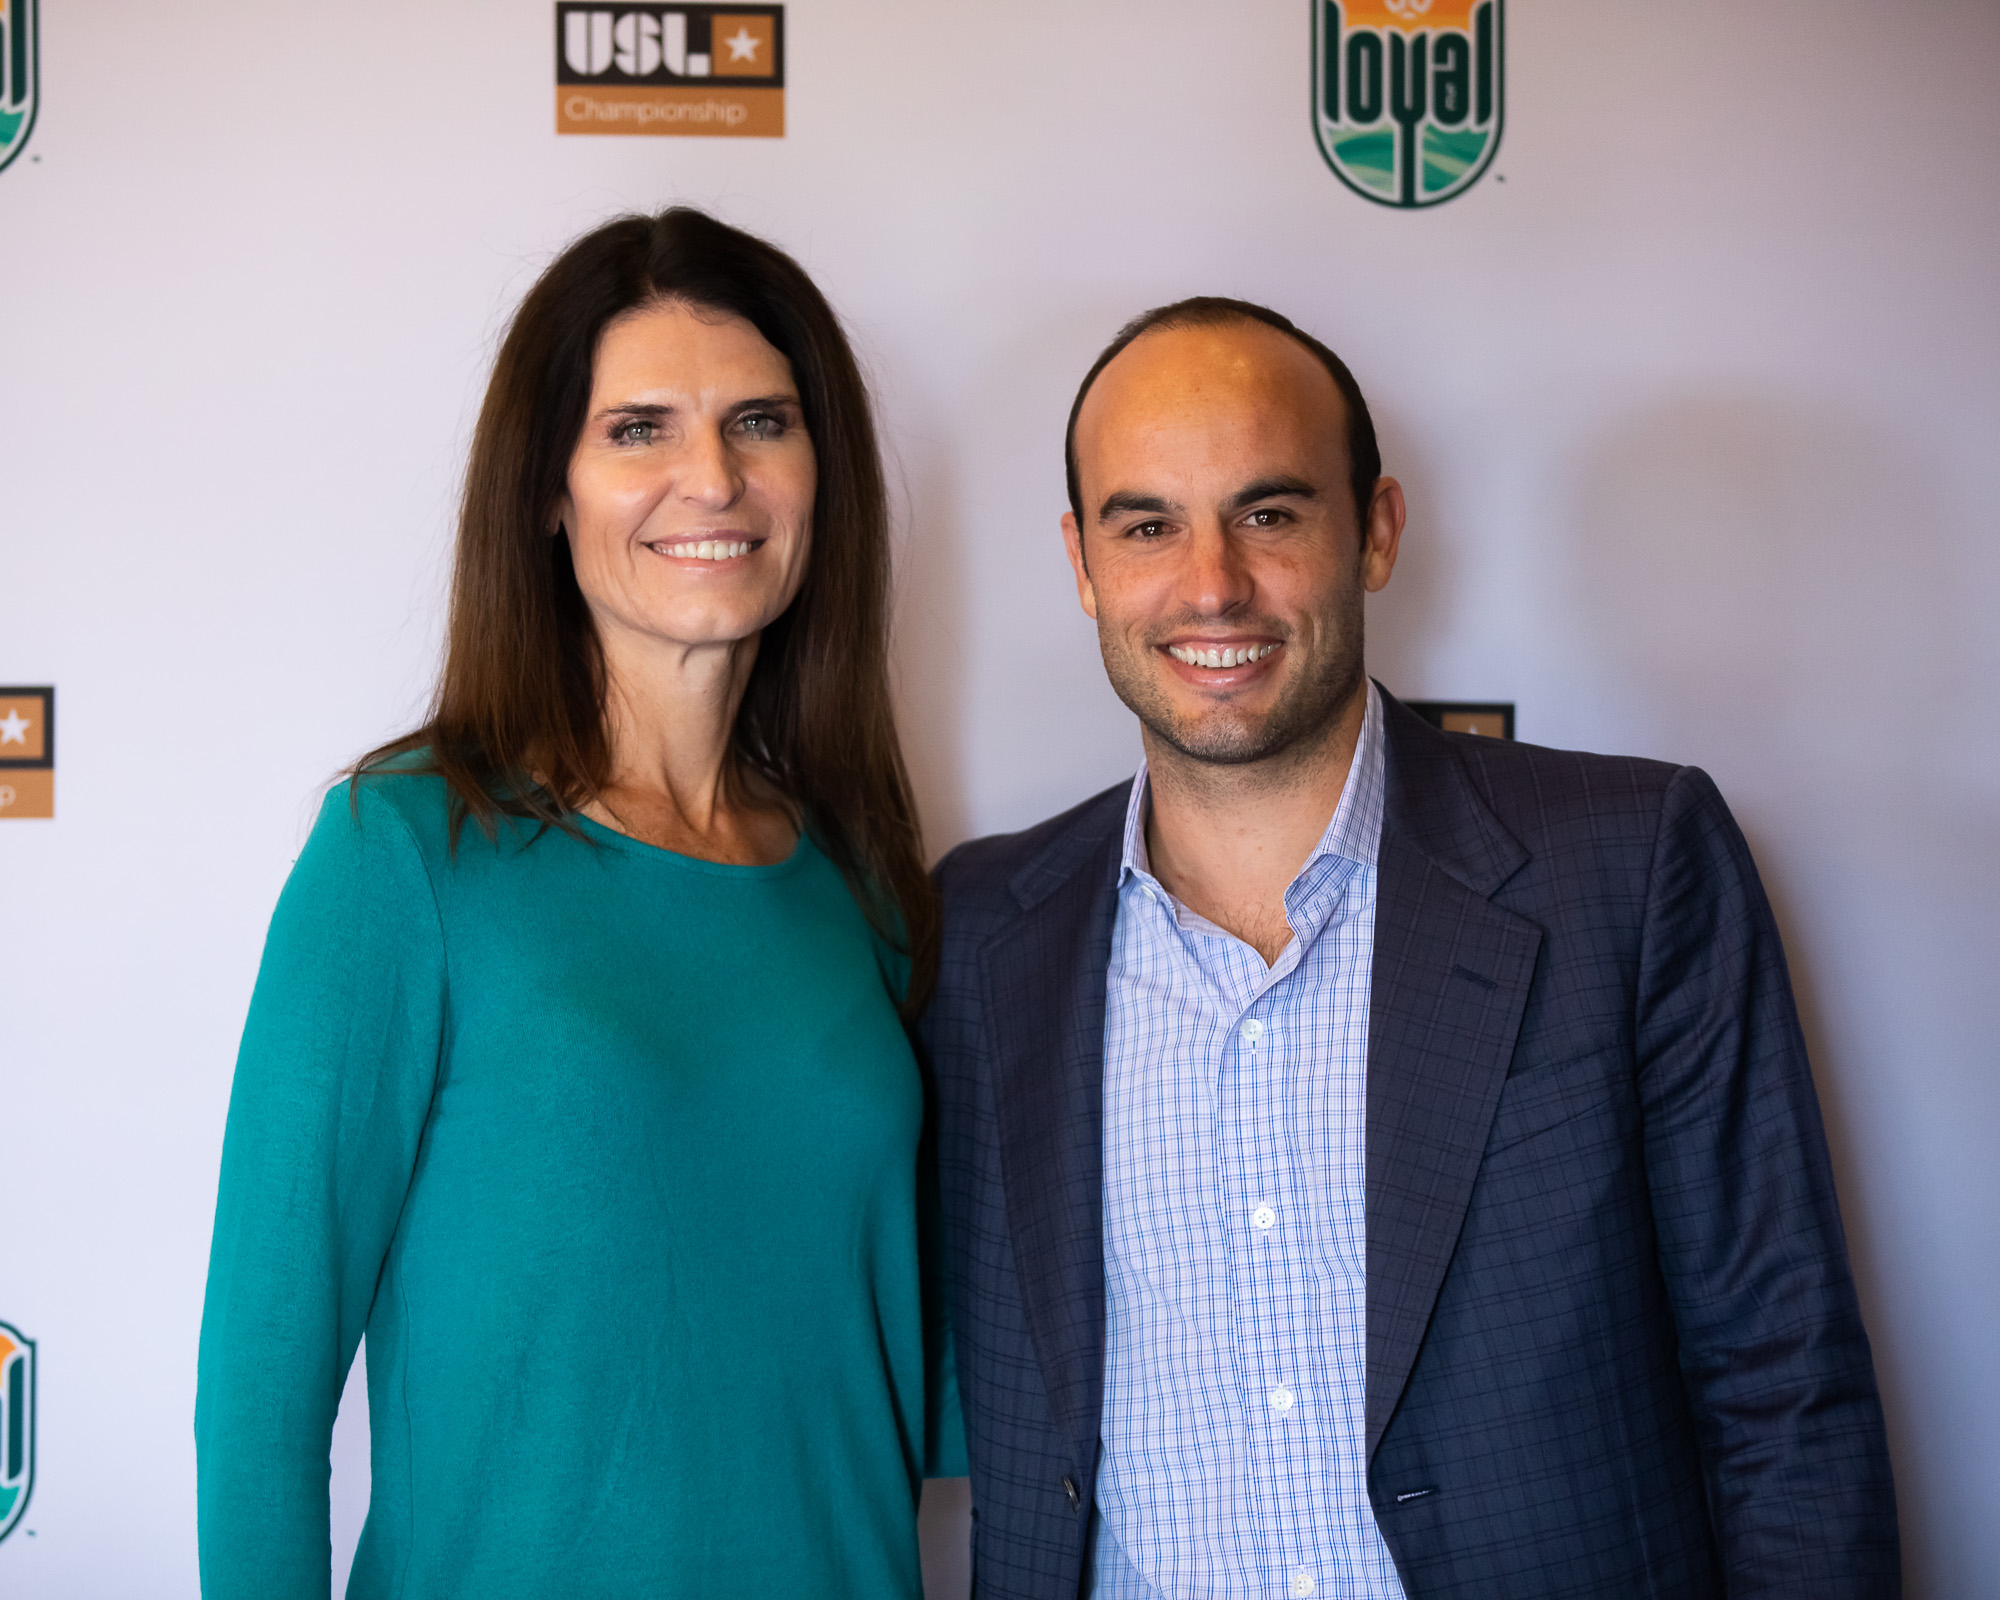 San Diego Loyal Soccer Club Names Landon Donovan as Manager & Carrie Taylor as Assistant Coach